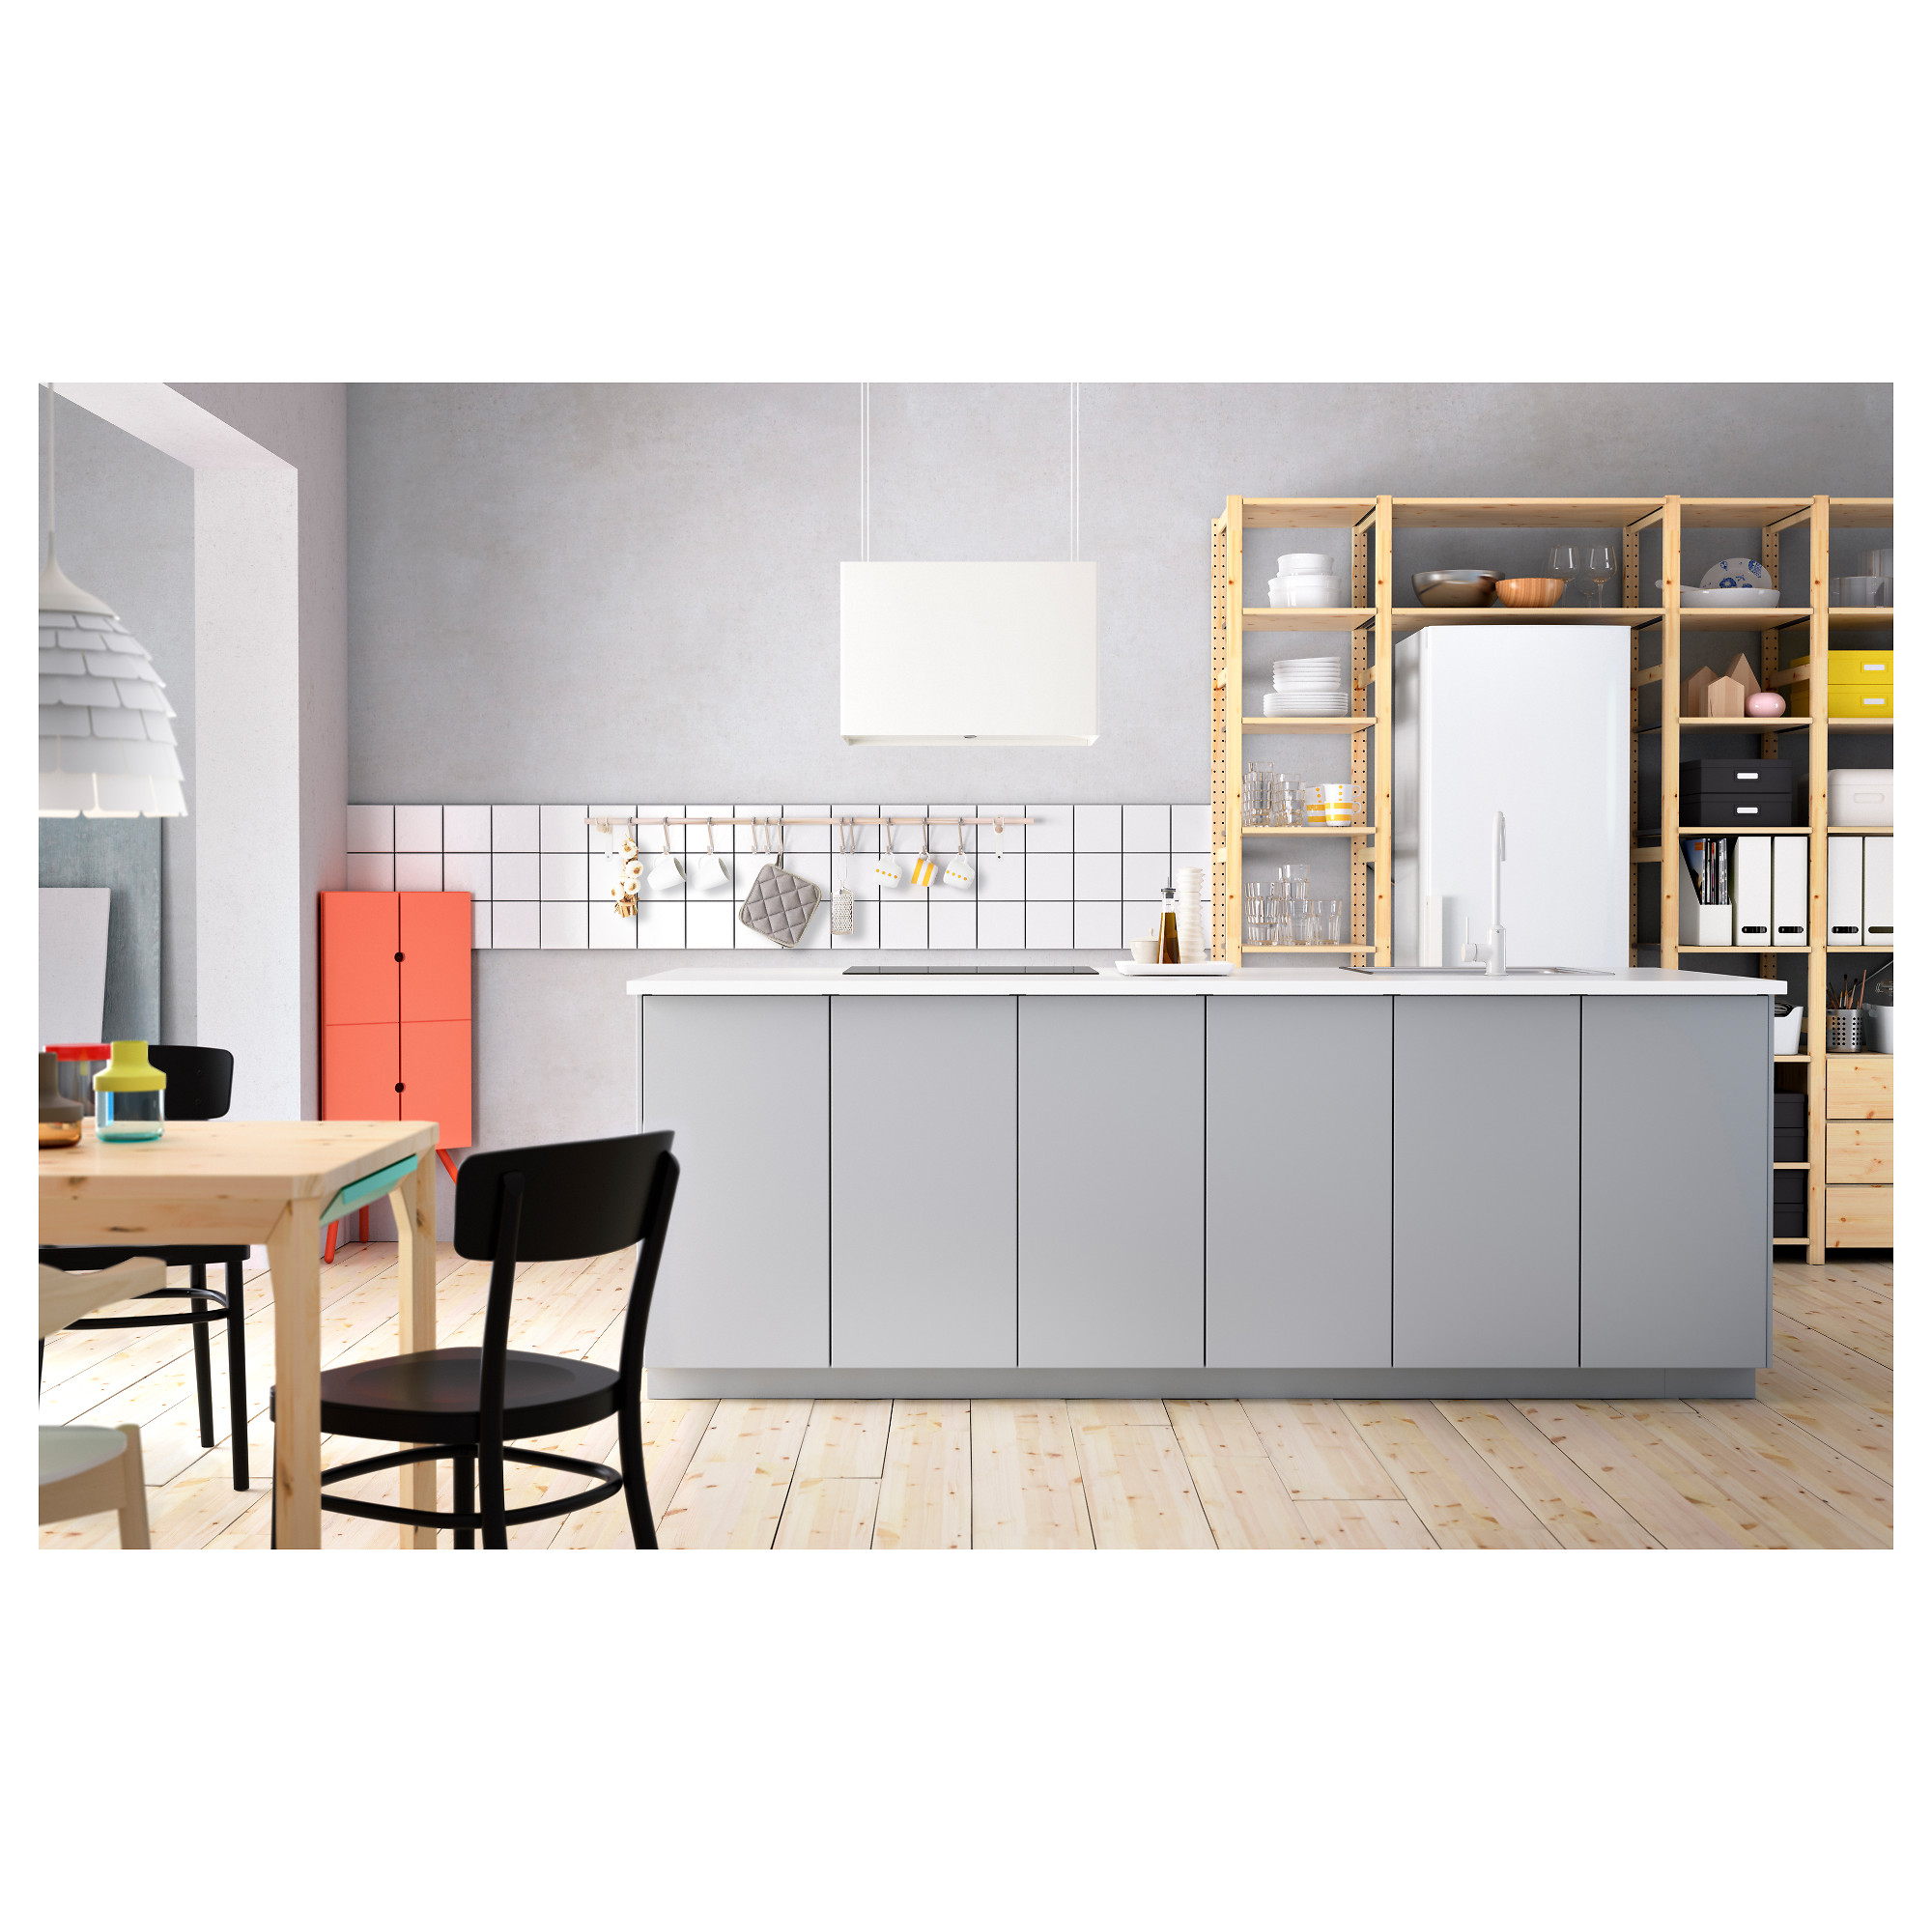 ikea conception cuisine domicile simple galerie cuisines interactive with ikea conception. Black Bedroom Furniture Sets. Home Design Ideas